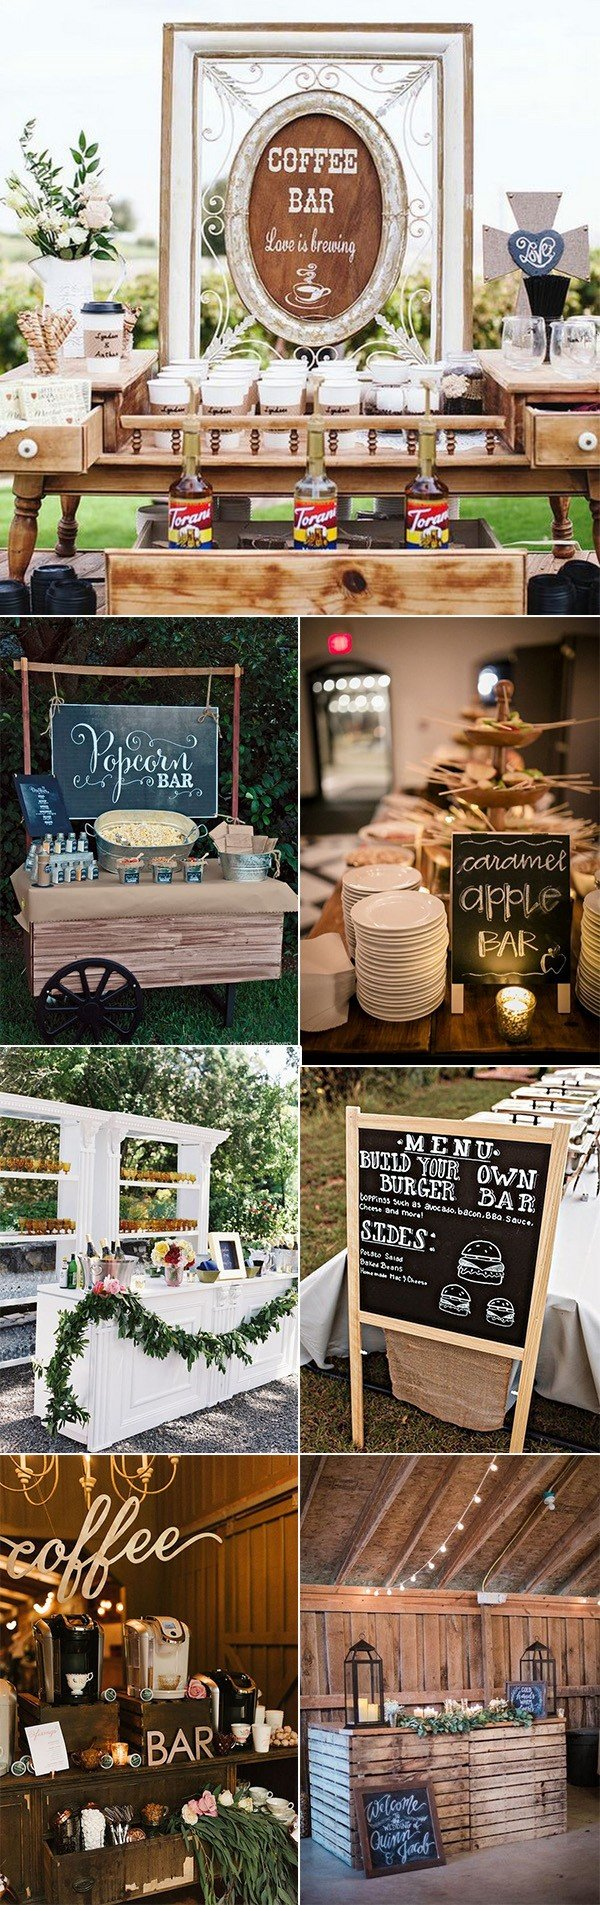 Trending 15 Wedding Reception Bar Ideas For 2018 Page 2 Of 2 Oh